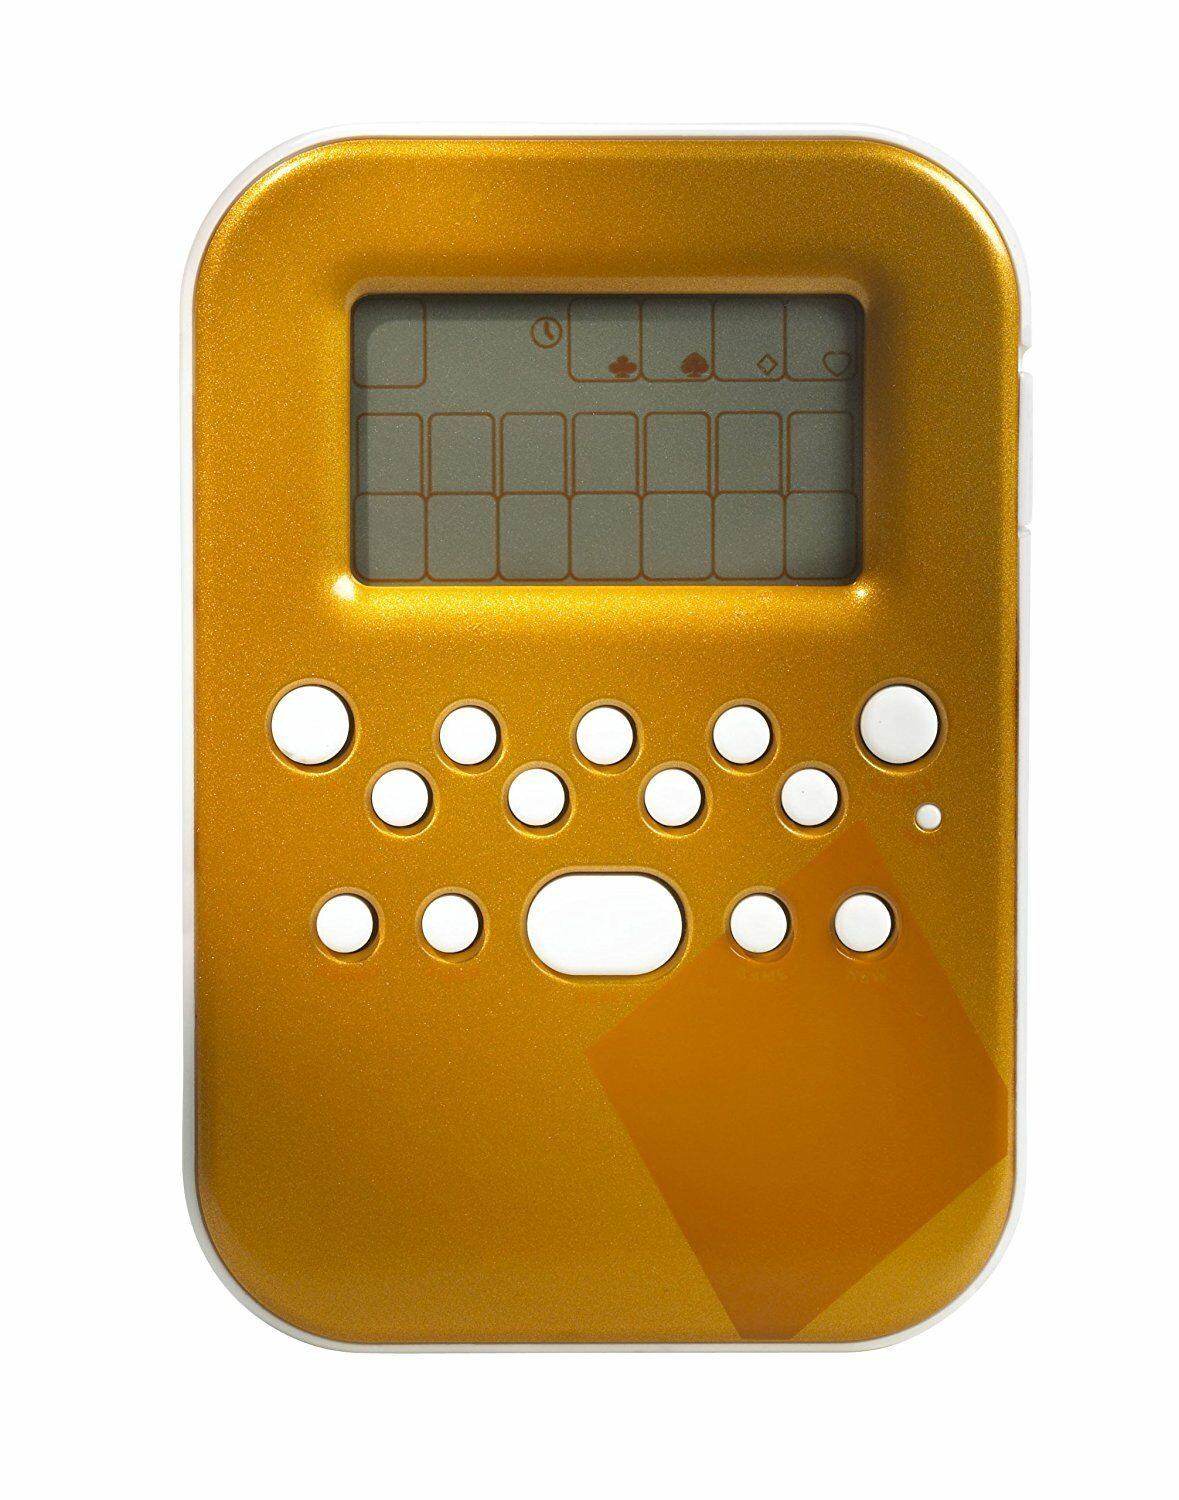 Radica - Lighted Classic Solitaire - Electronic Handheld Game